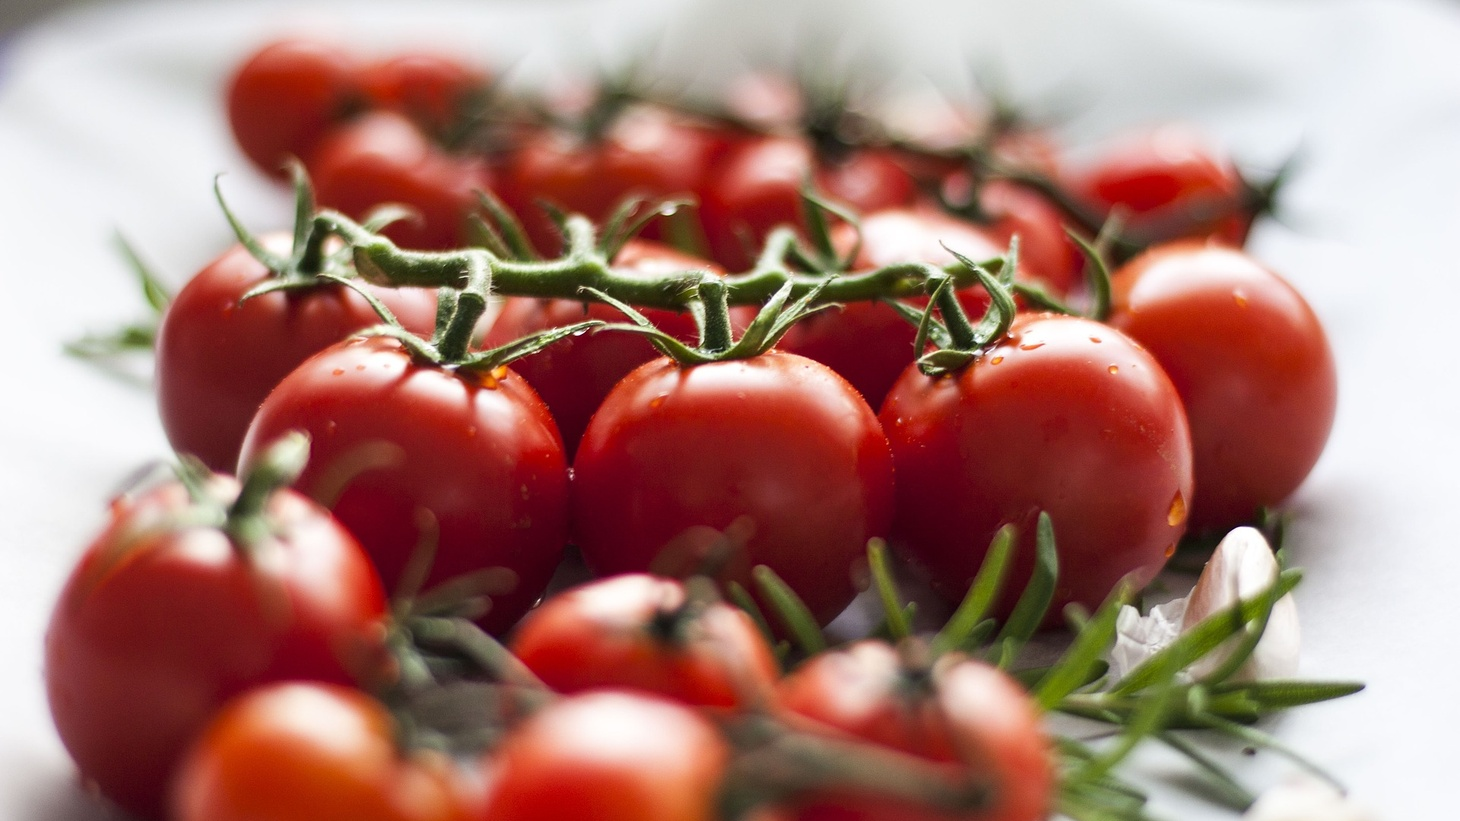 Backyard gardeners across the Southland will flock to Tomatomania events to shop hundreds of varieties of tomato seedlings.